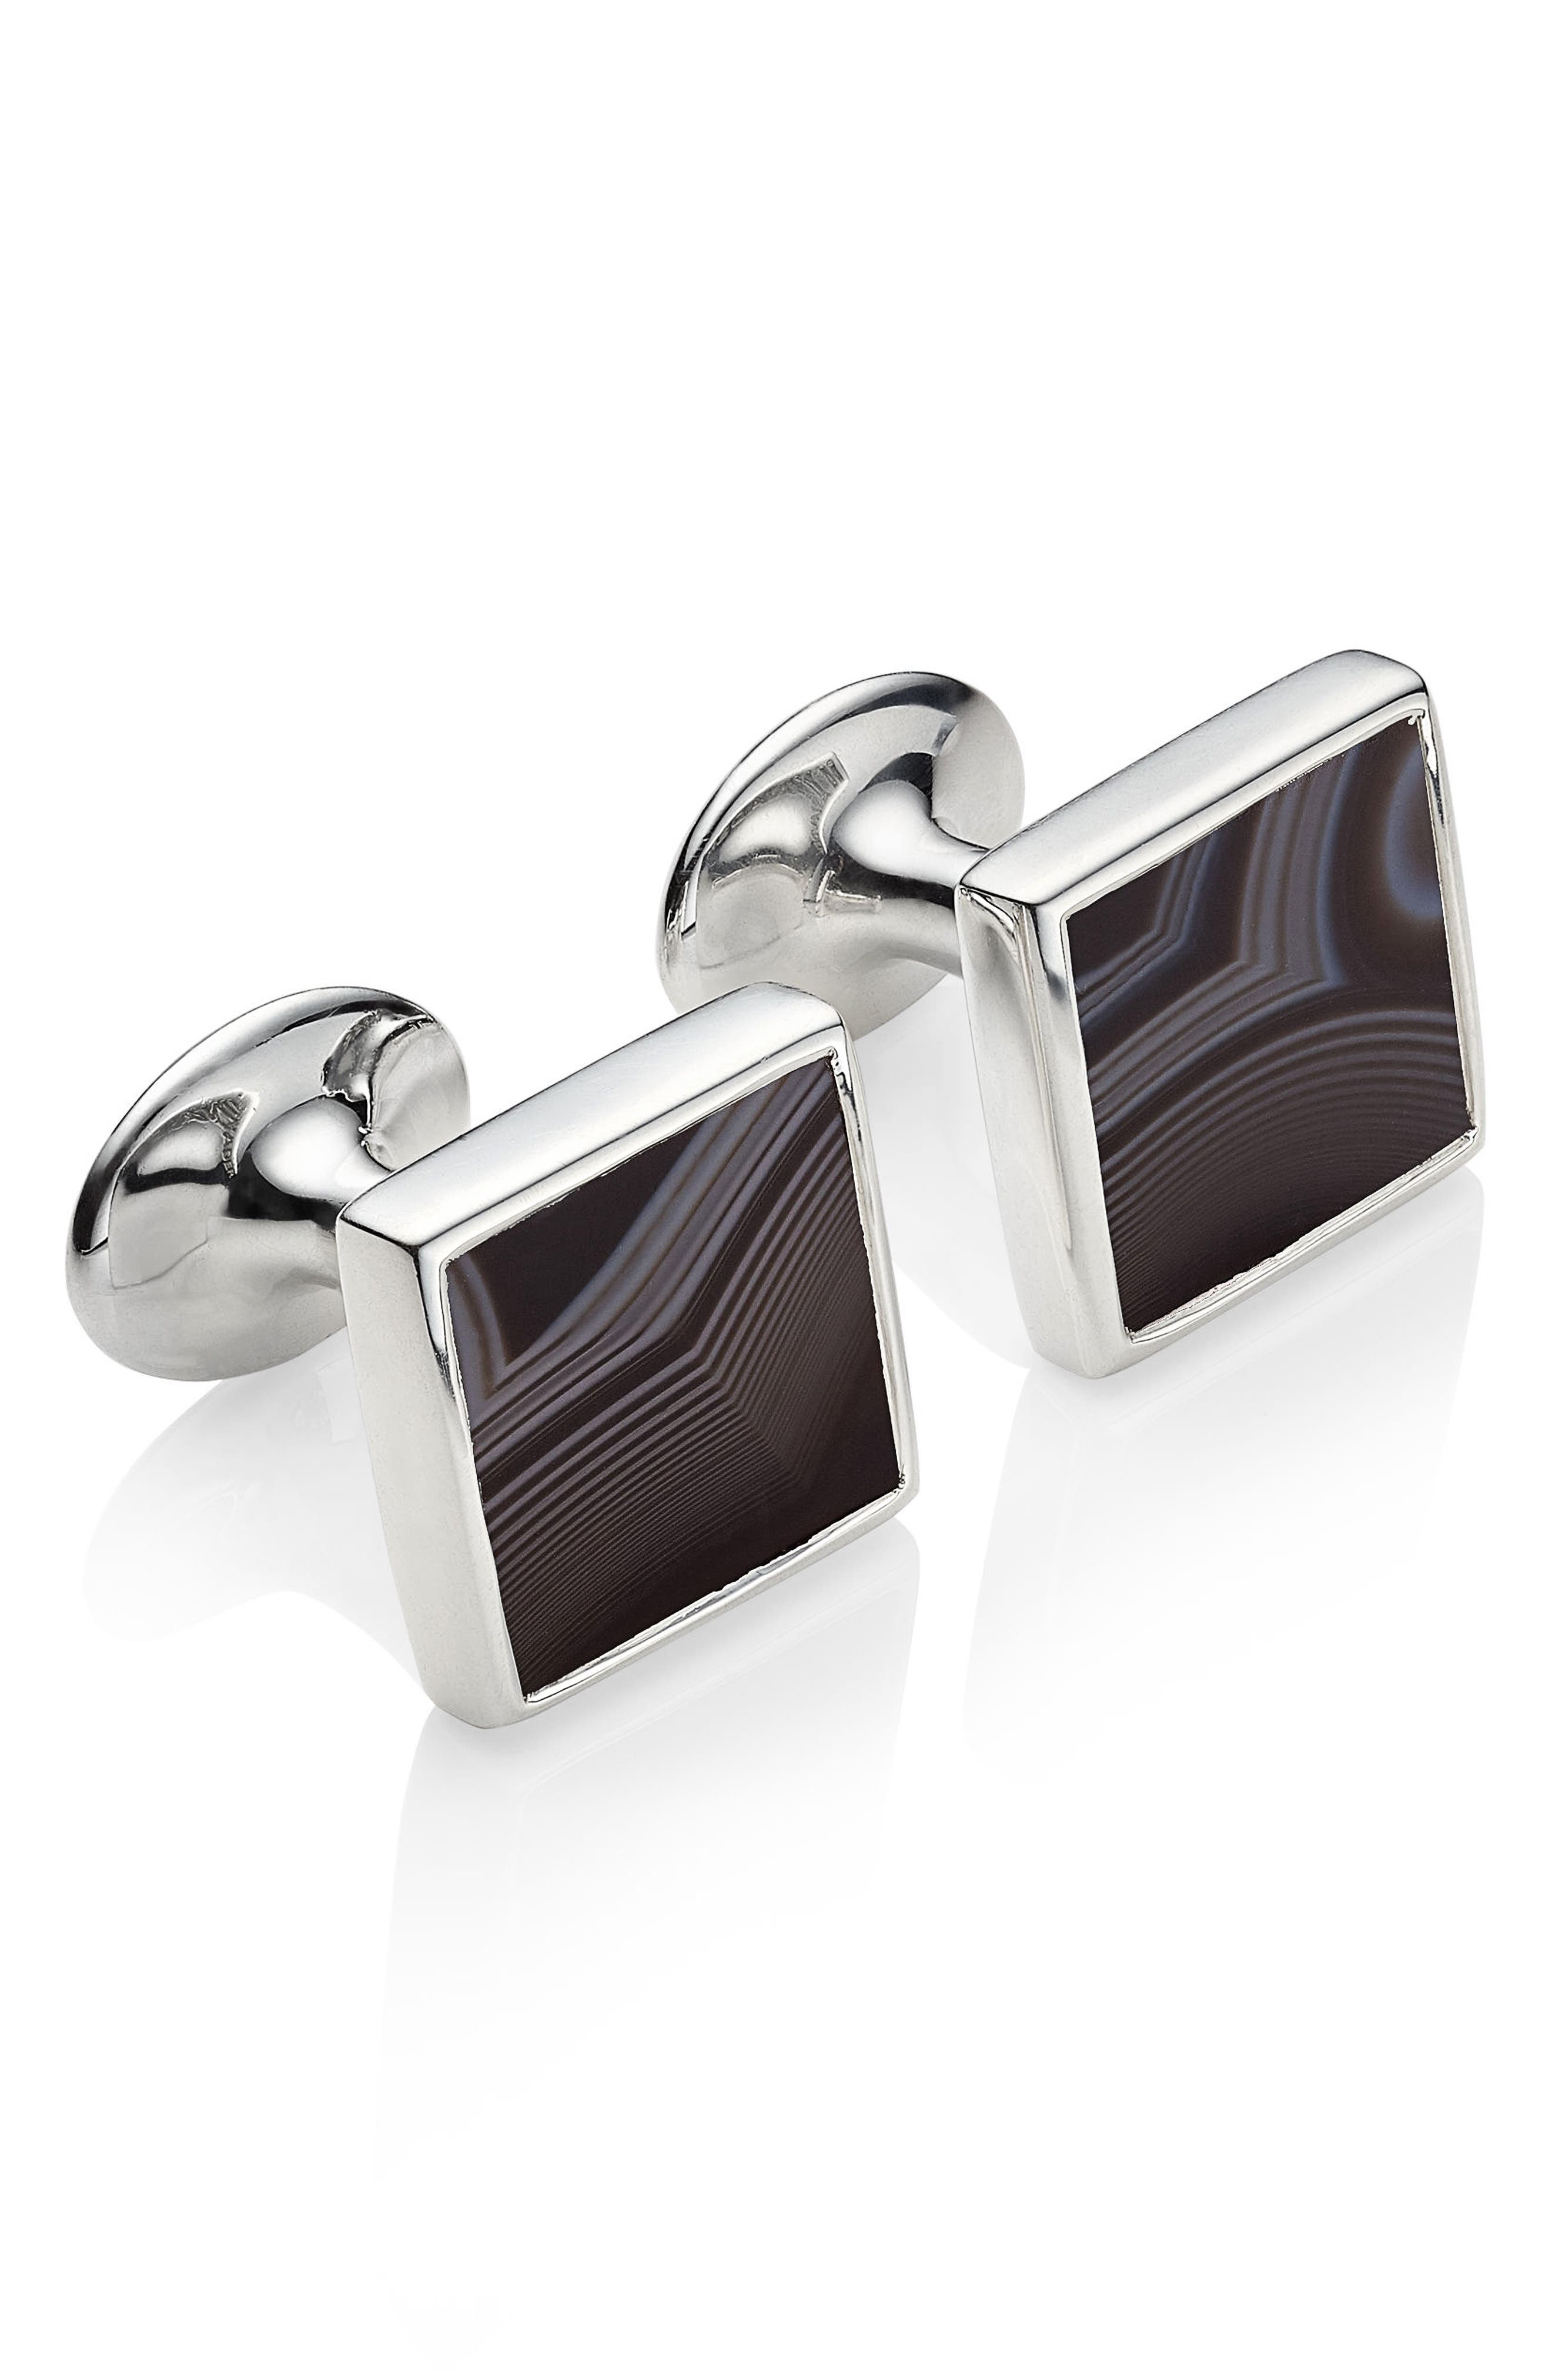 Alta Black Onyx Square Cuff Links,                             Main thumbnail 1, color,                             040